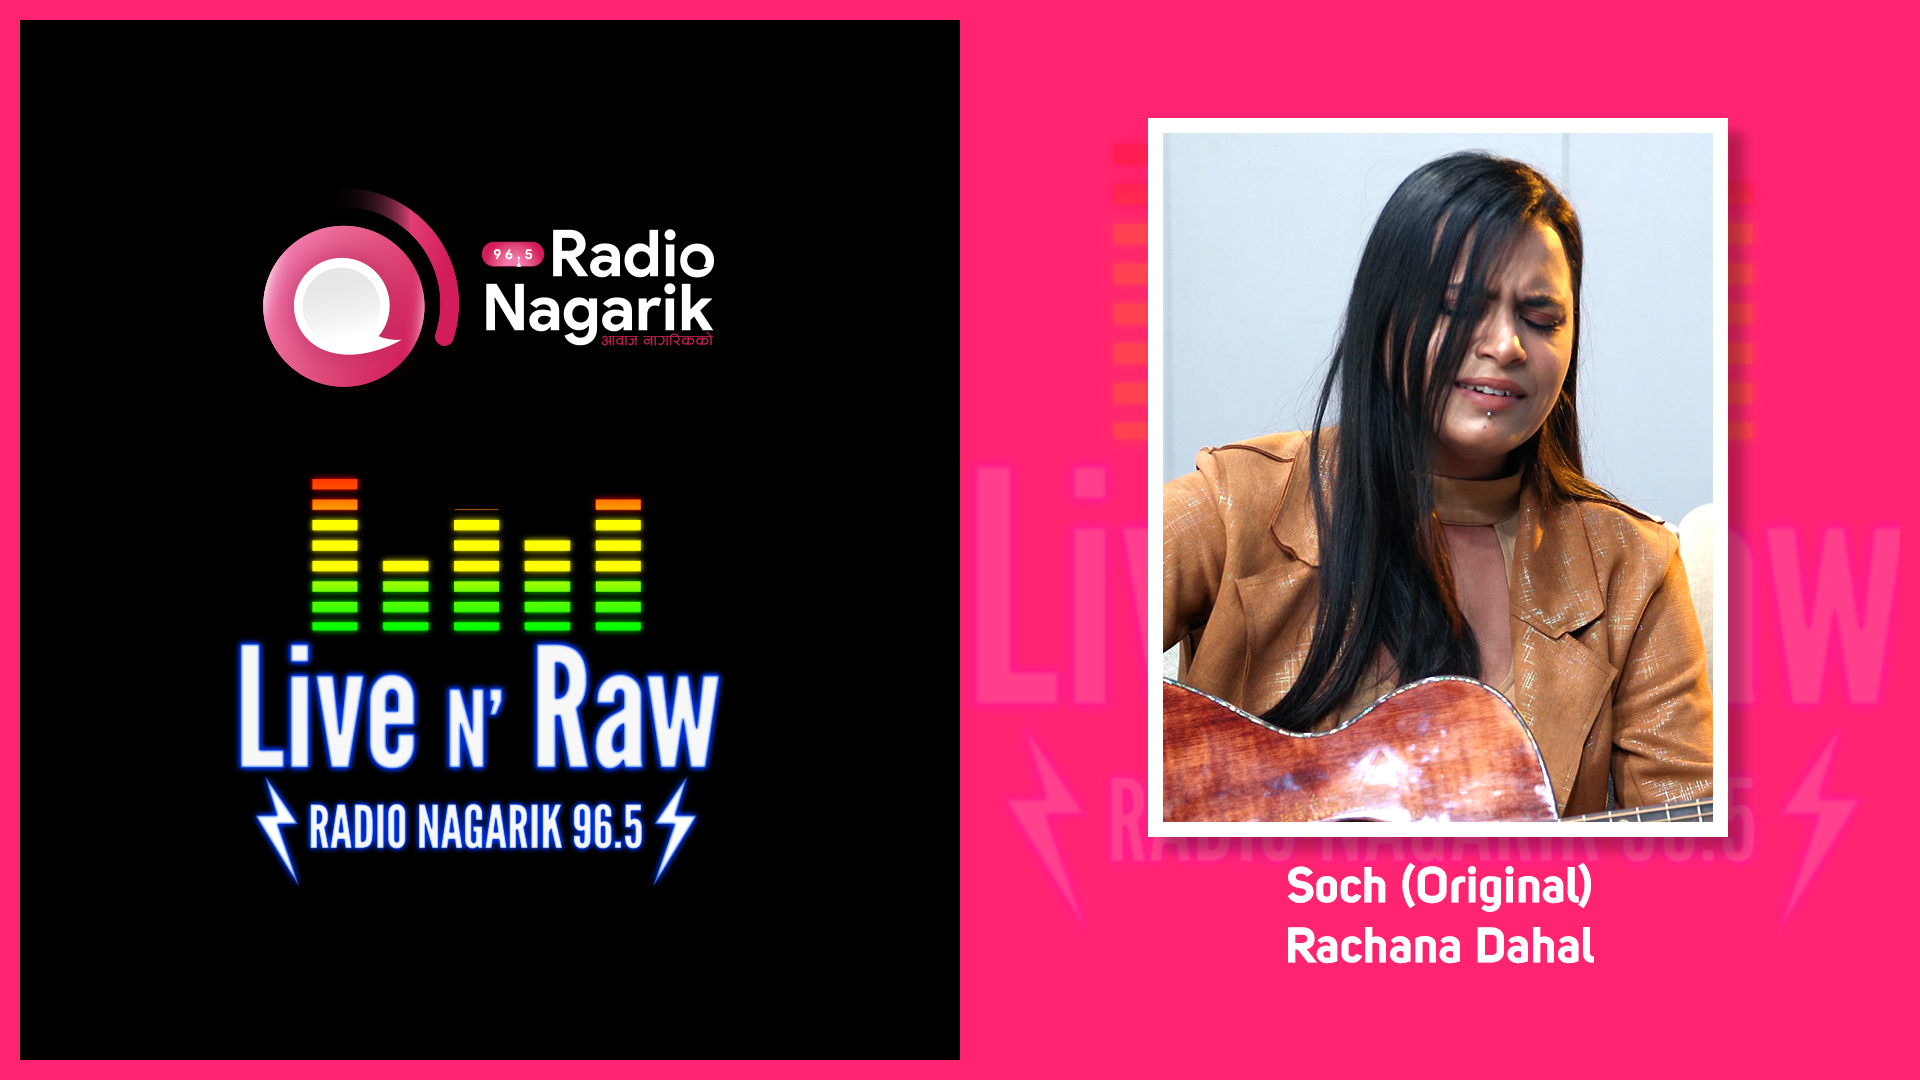 Rachana Dahal - Soch (Original) | Live N' Raw